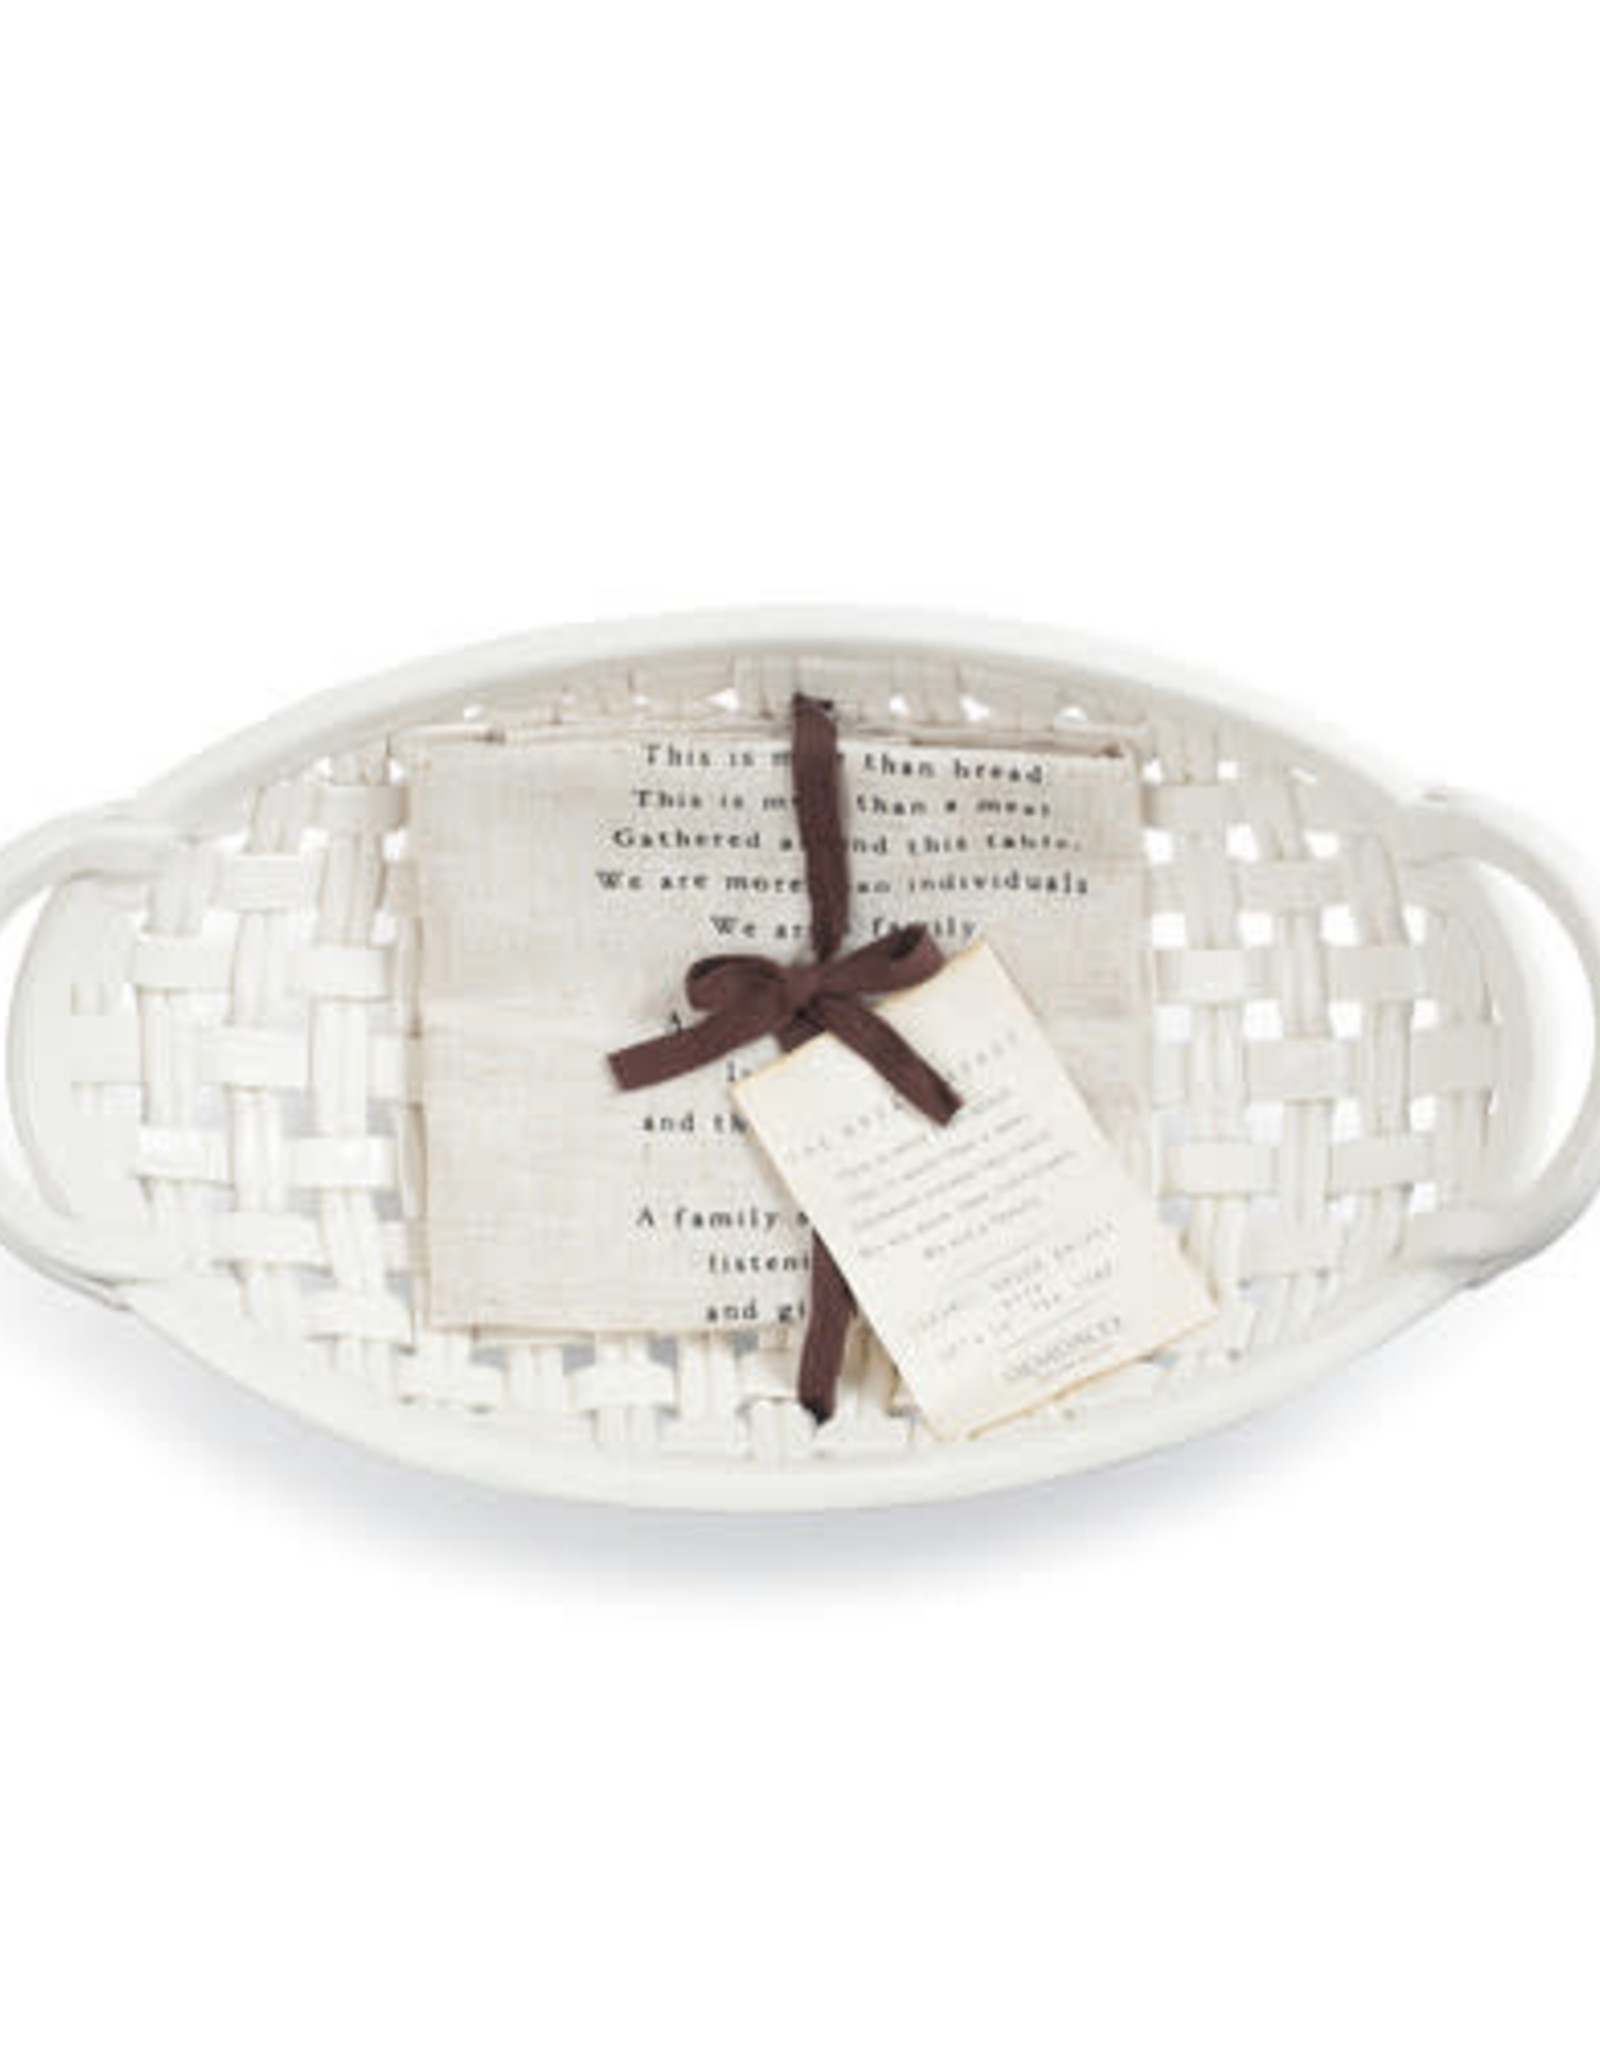 Gatherings Bread Basket